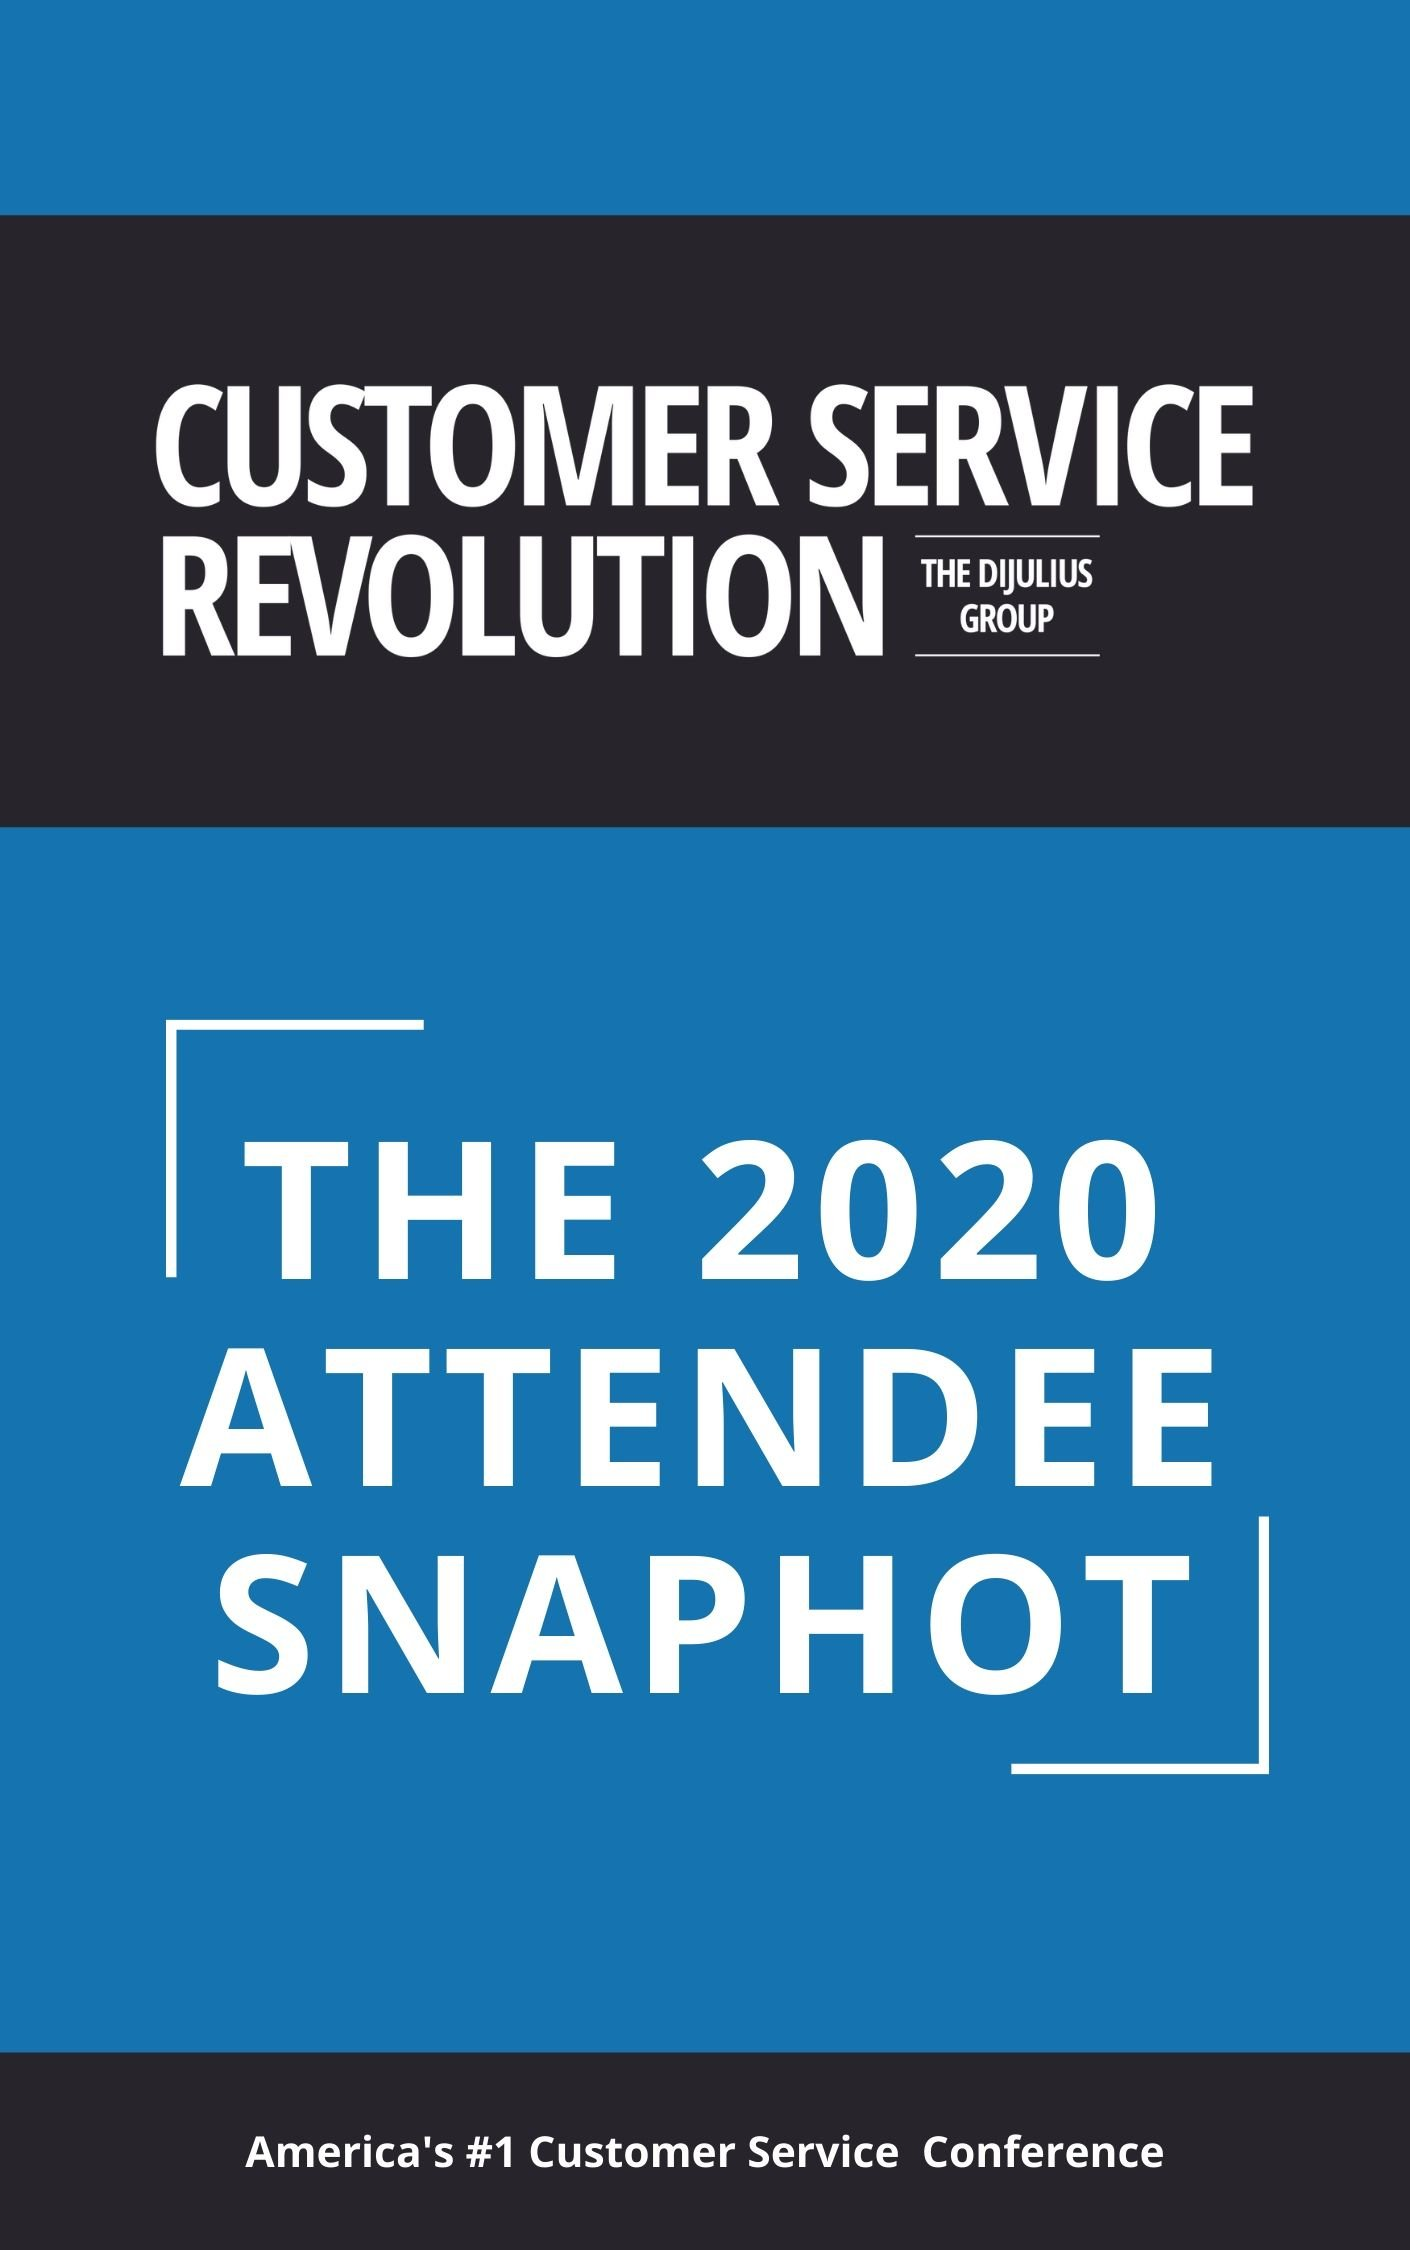 The 2020 Attendee snapshot